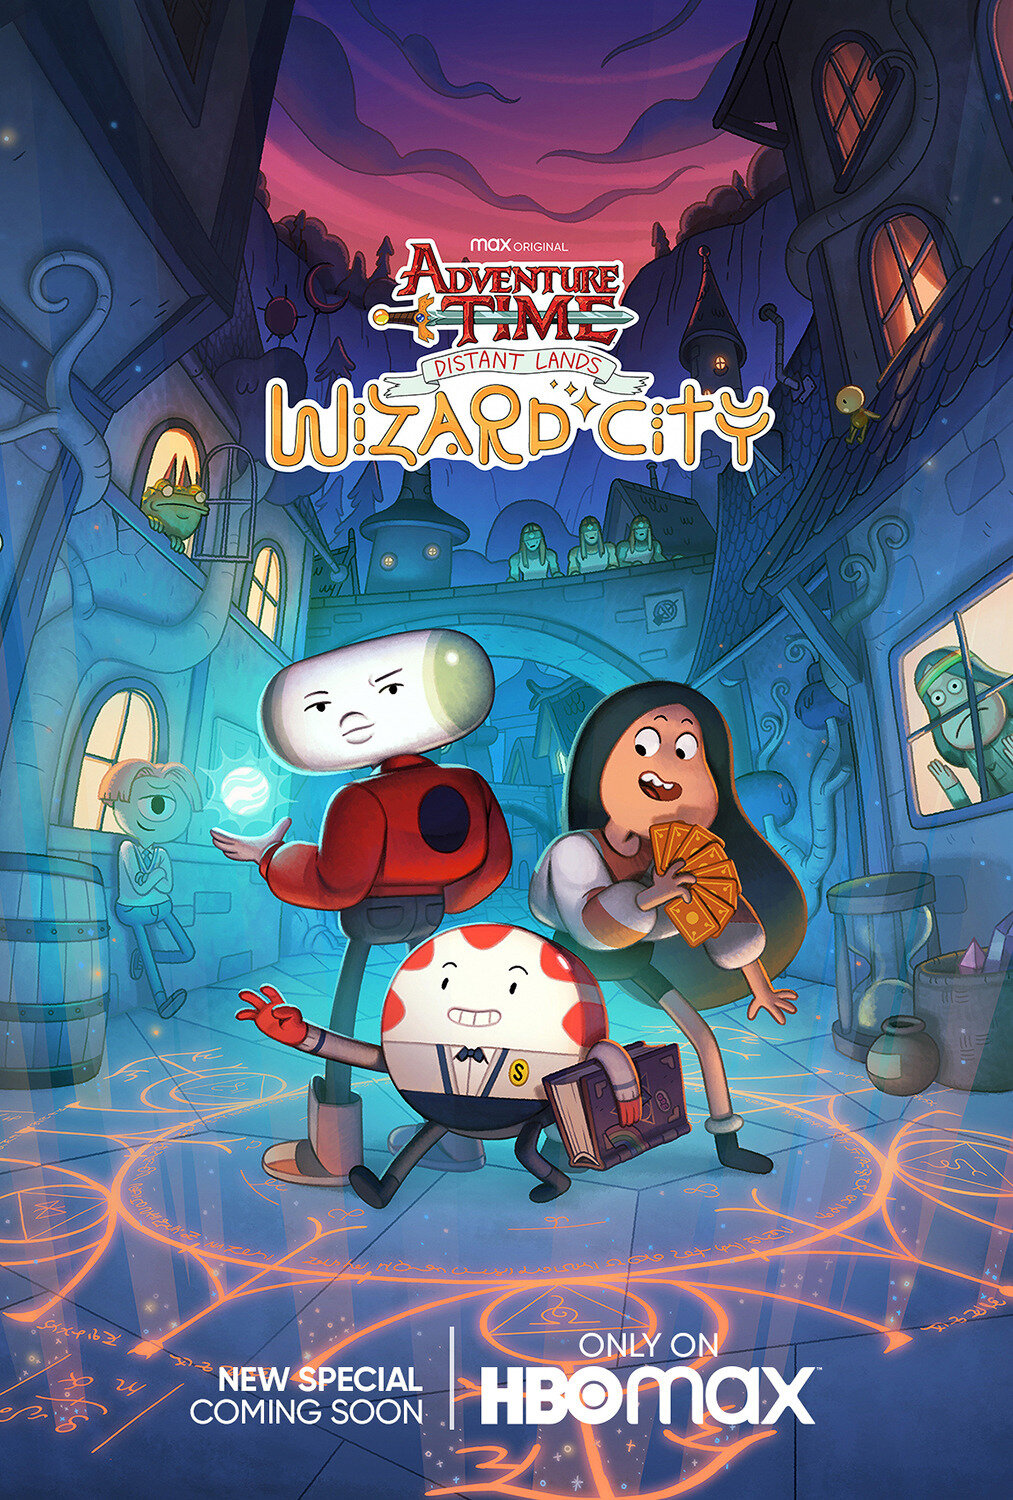 Adventure Time: Distant Lands ne zaman